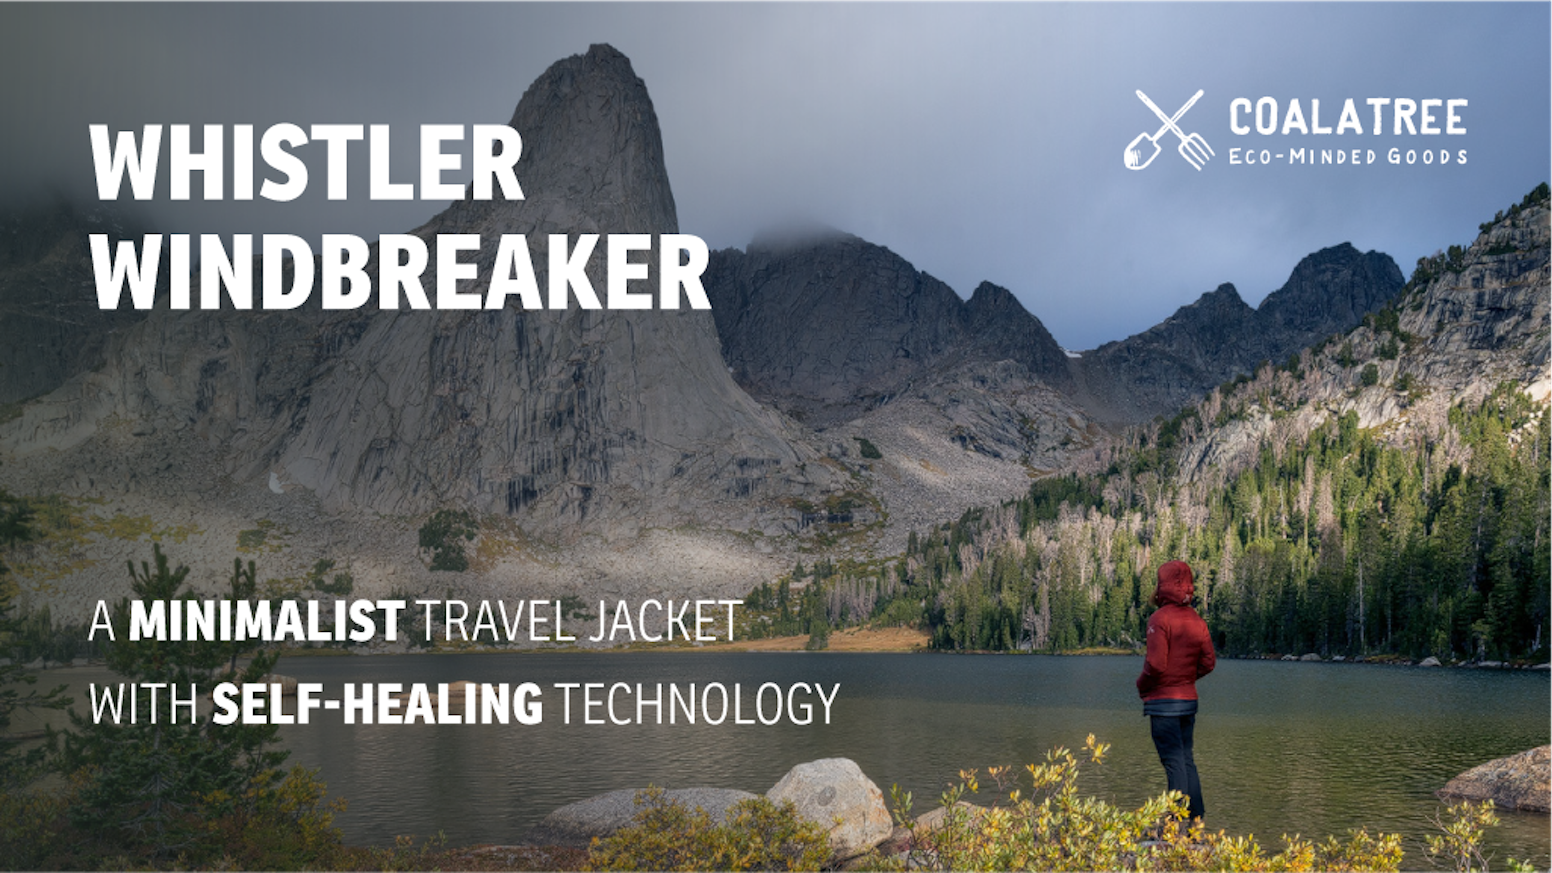 The self-healing minimalist jacket that does it all.